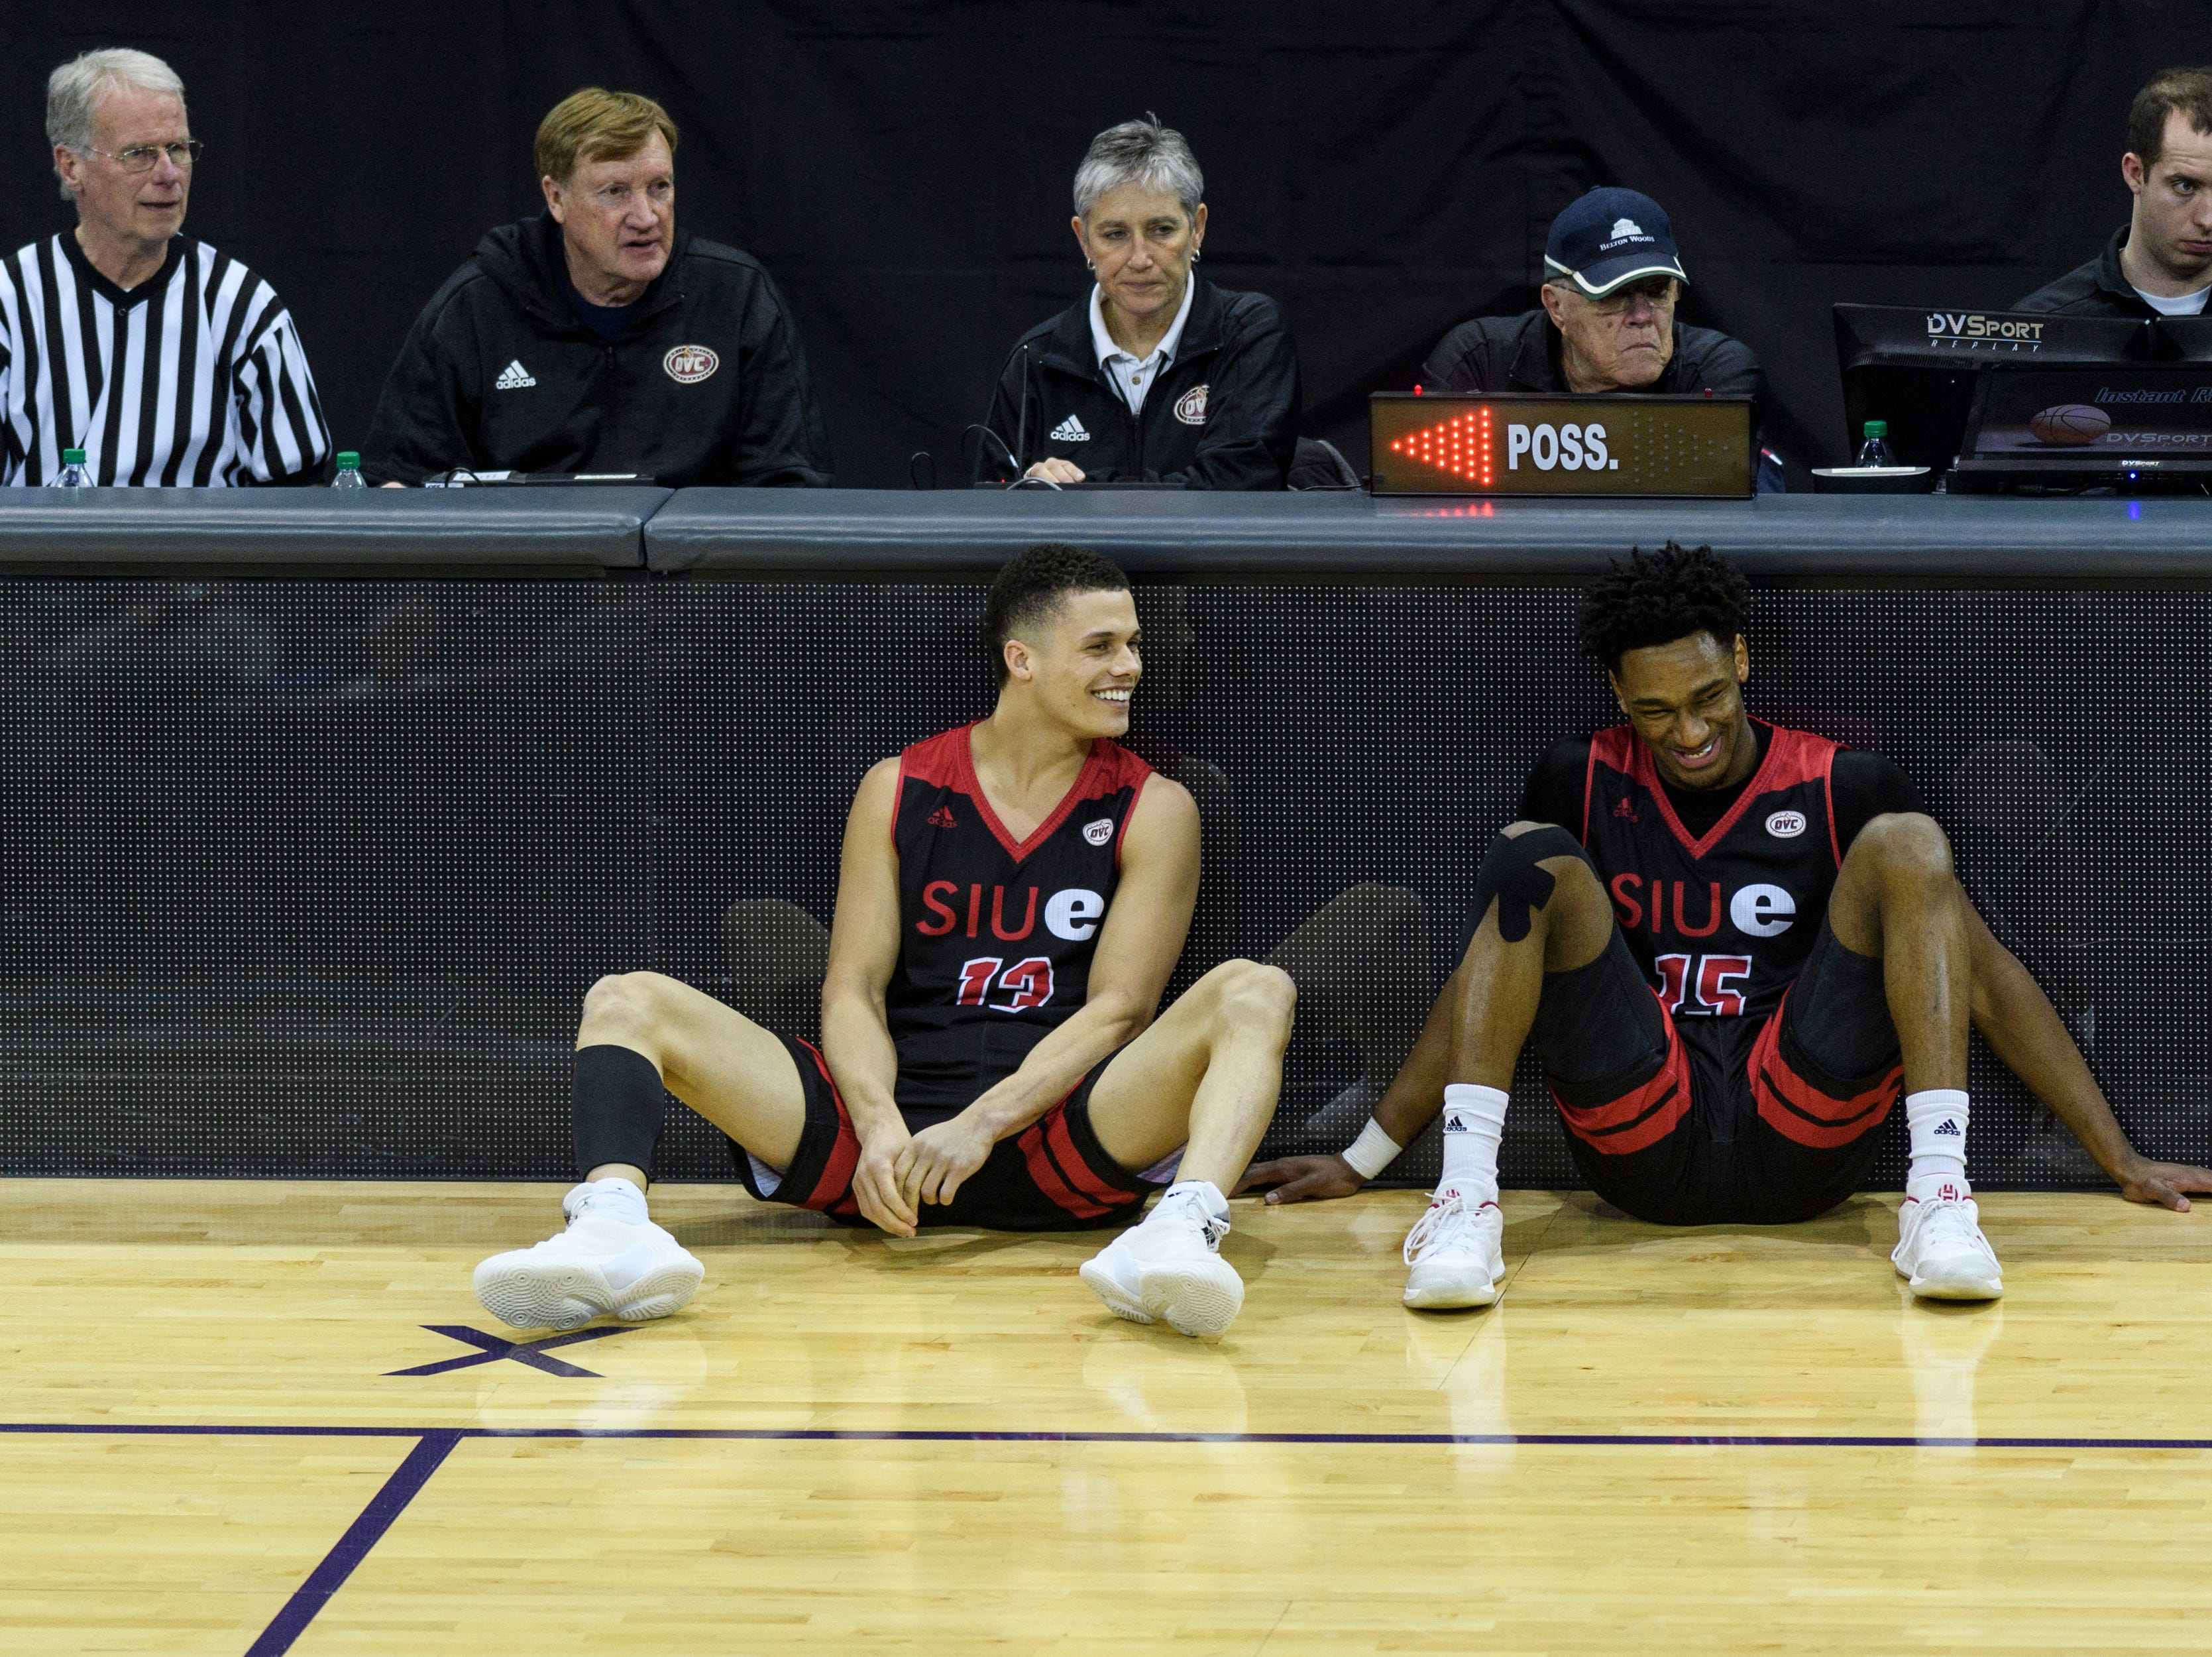 Southern Illinois University Edwardsville's Christian Ellis (13) David McFarland (15) laugh together as they wait to be subbed into the Ohio Valley Conference Tournament match-up against Morehead State at Ford Center in Evansville, Ind., Wednesday, March 6, 2019. Their team fell 72-68 to Morehead.